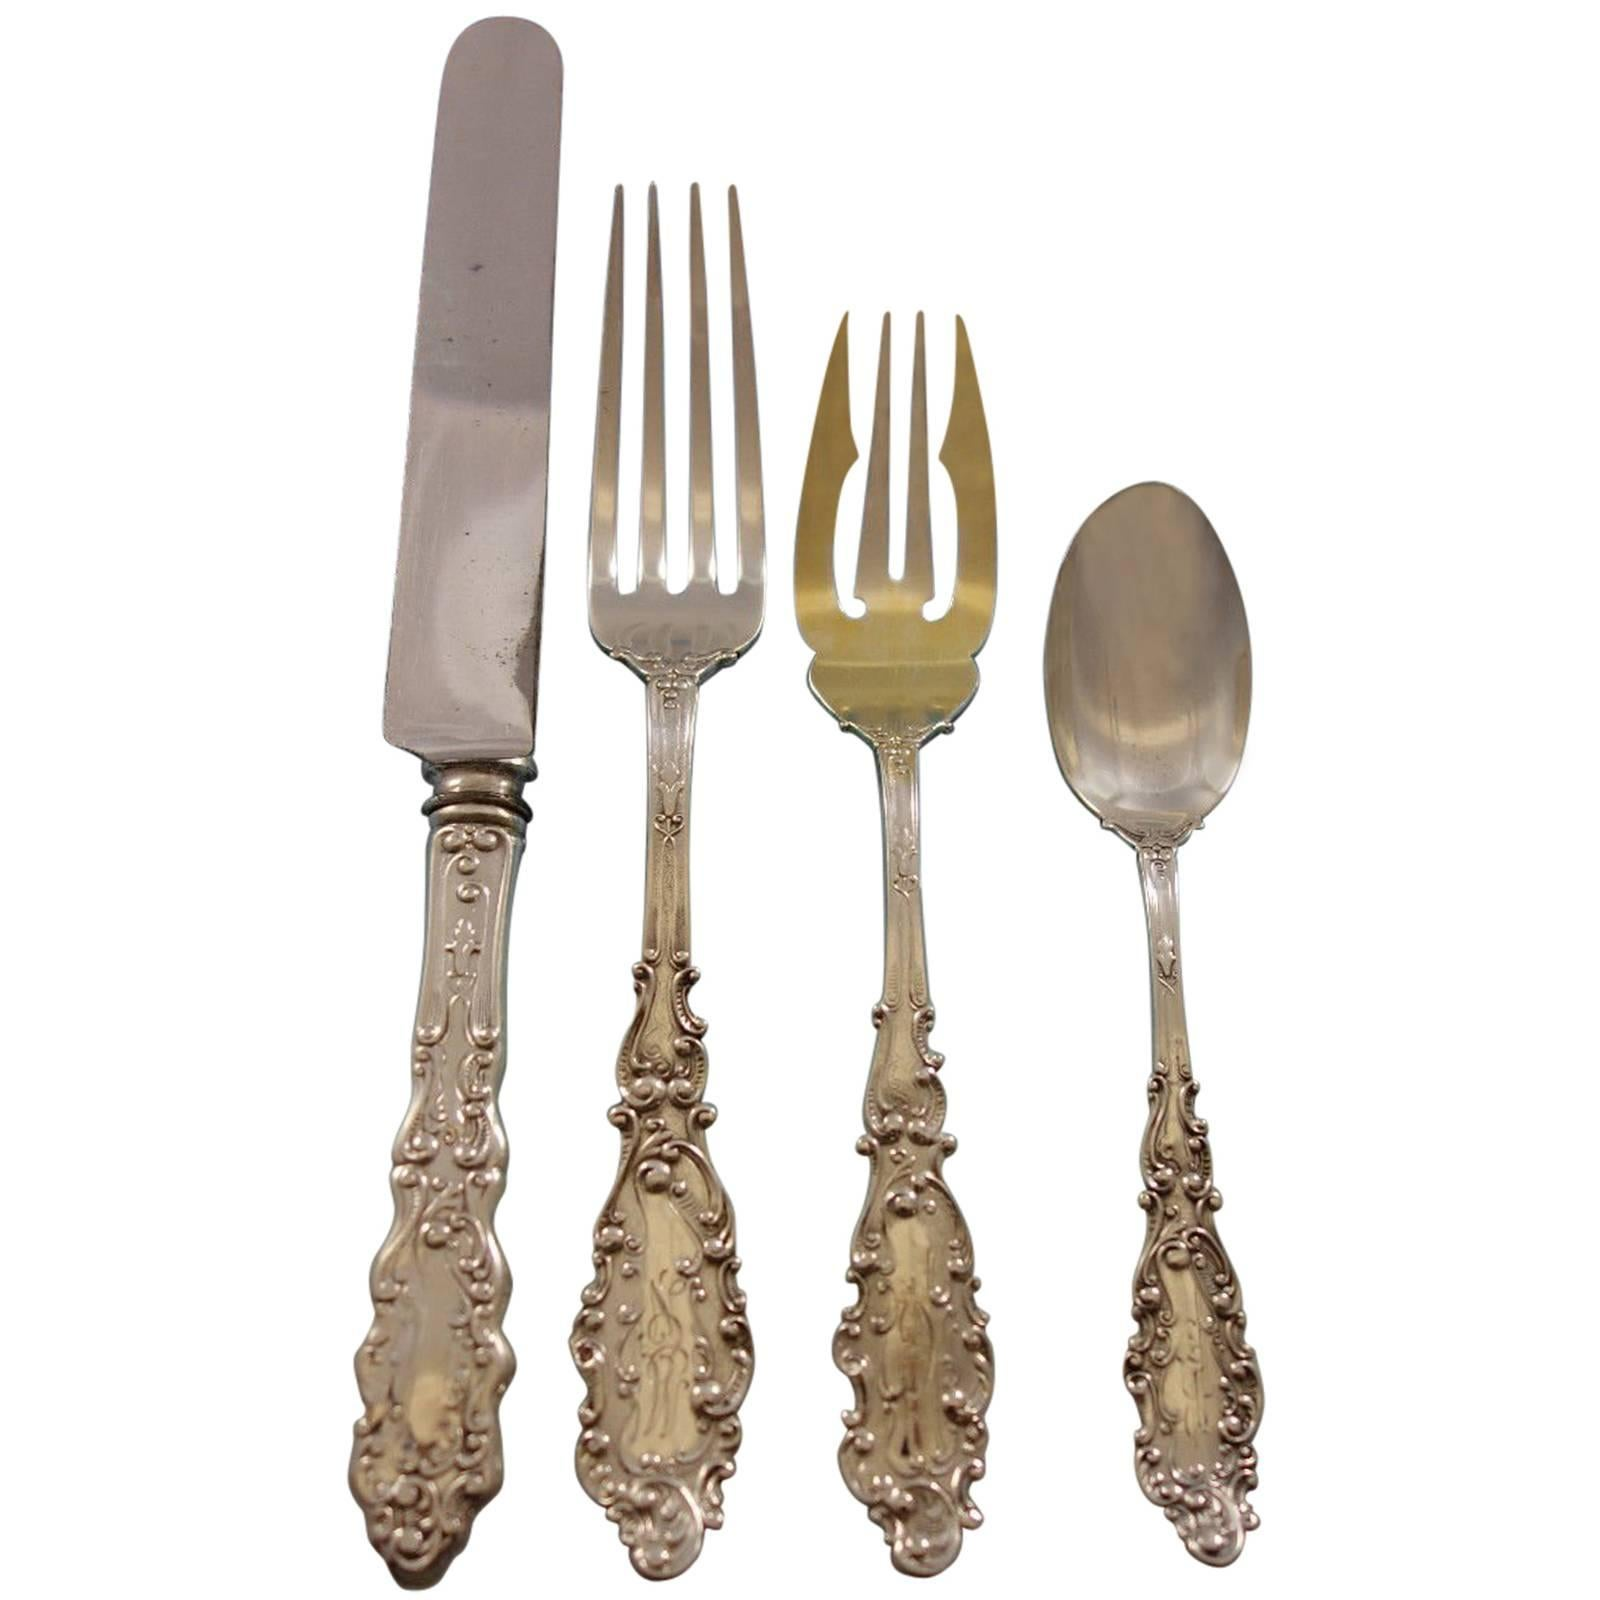 Luxembourg by Gorham Sterling Silver Flatware Set 12 Service 80 Pcs Dinner